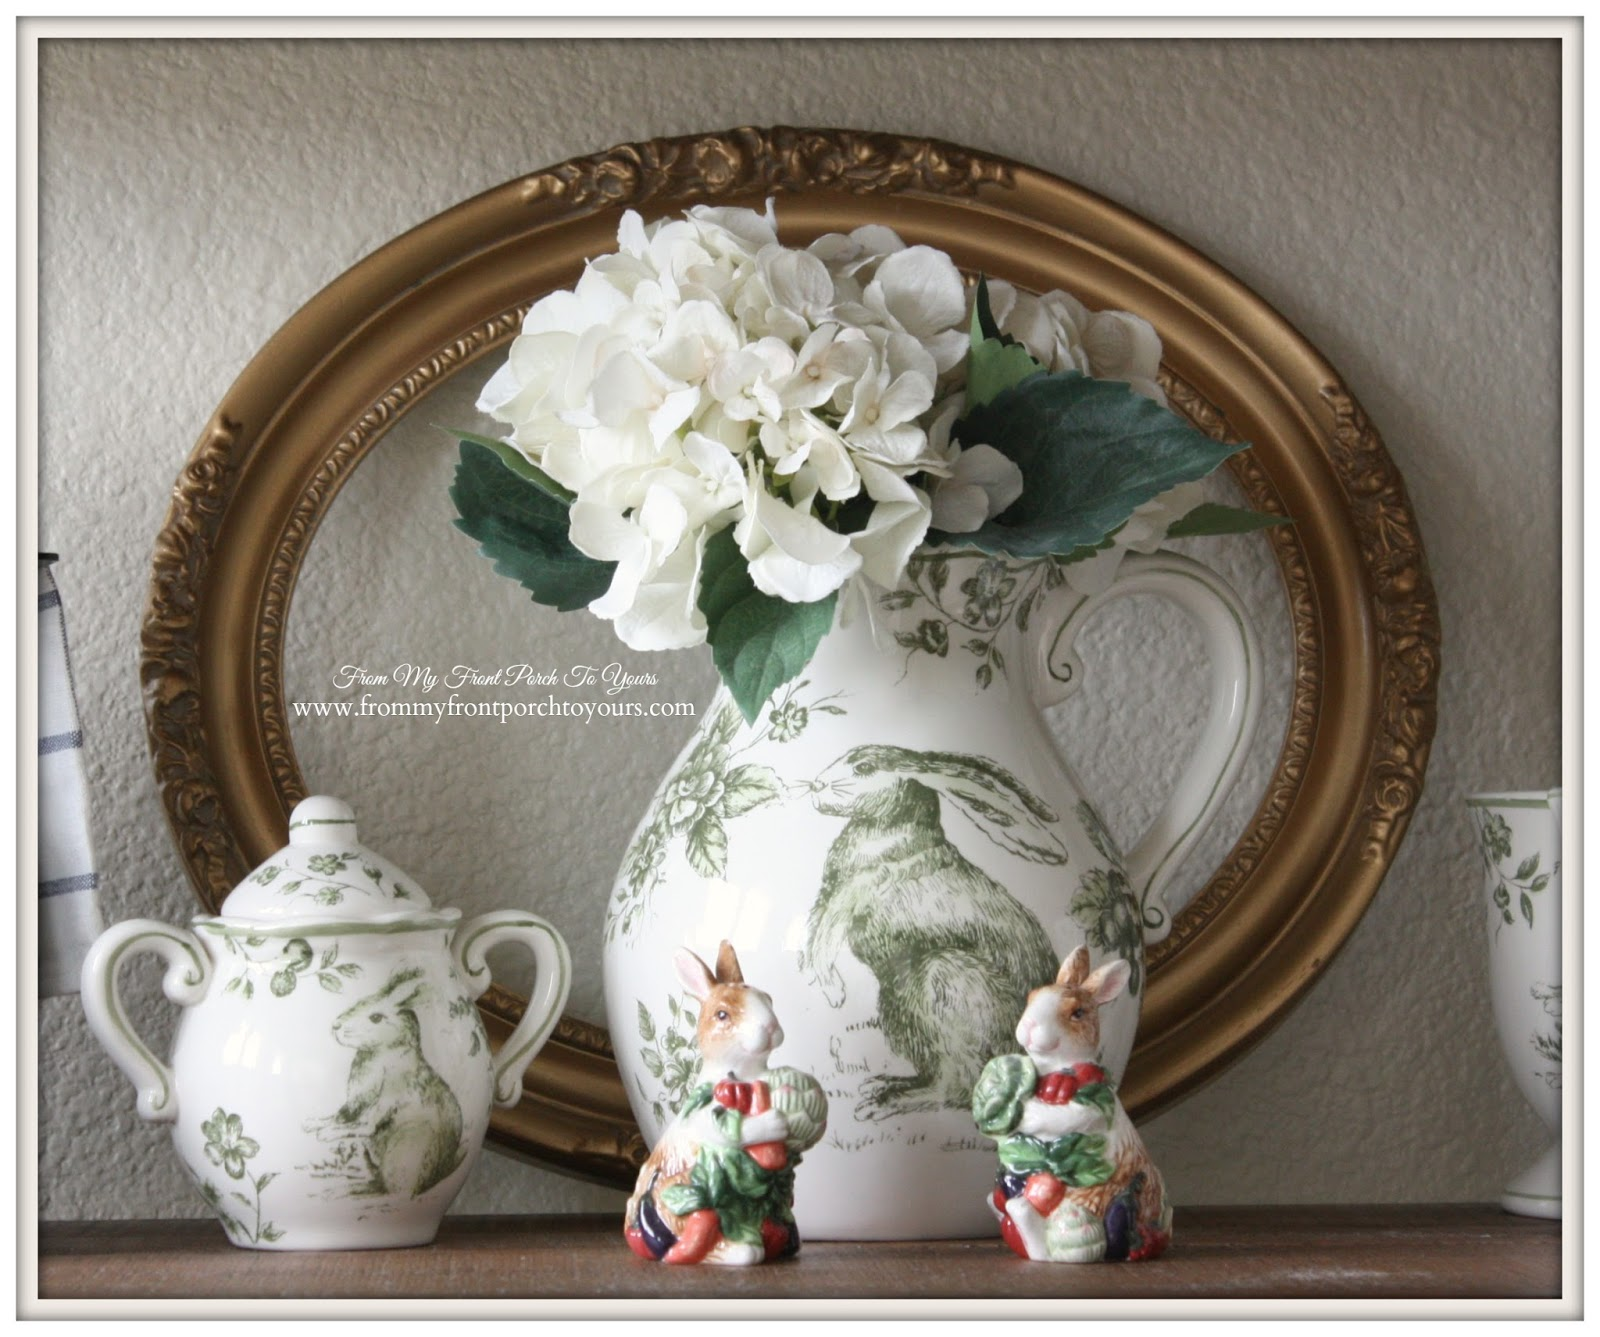 French Farmhouse Spring-Green Transferware- Breakfast Nook- From My Front Porch To Yours